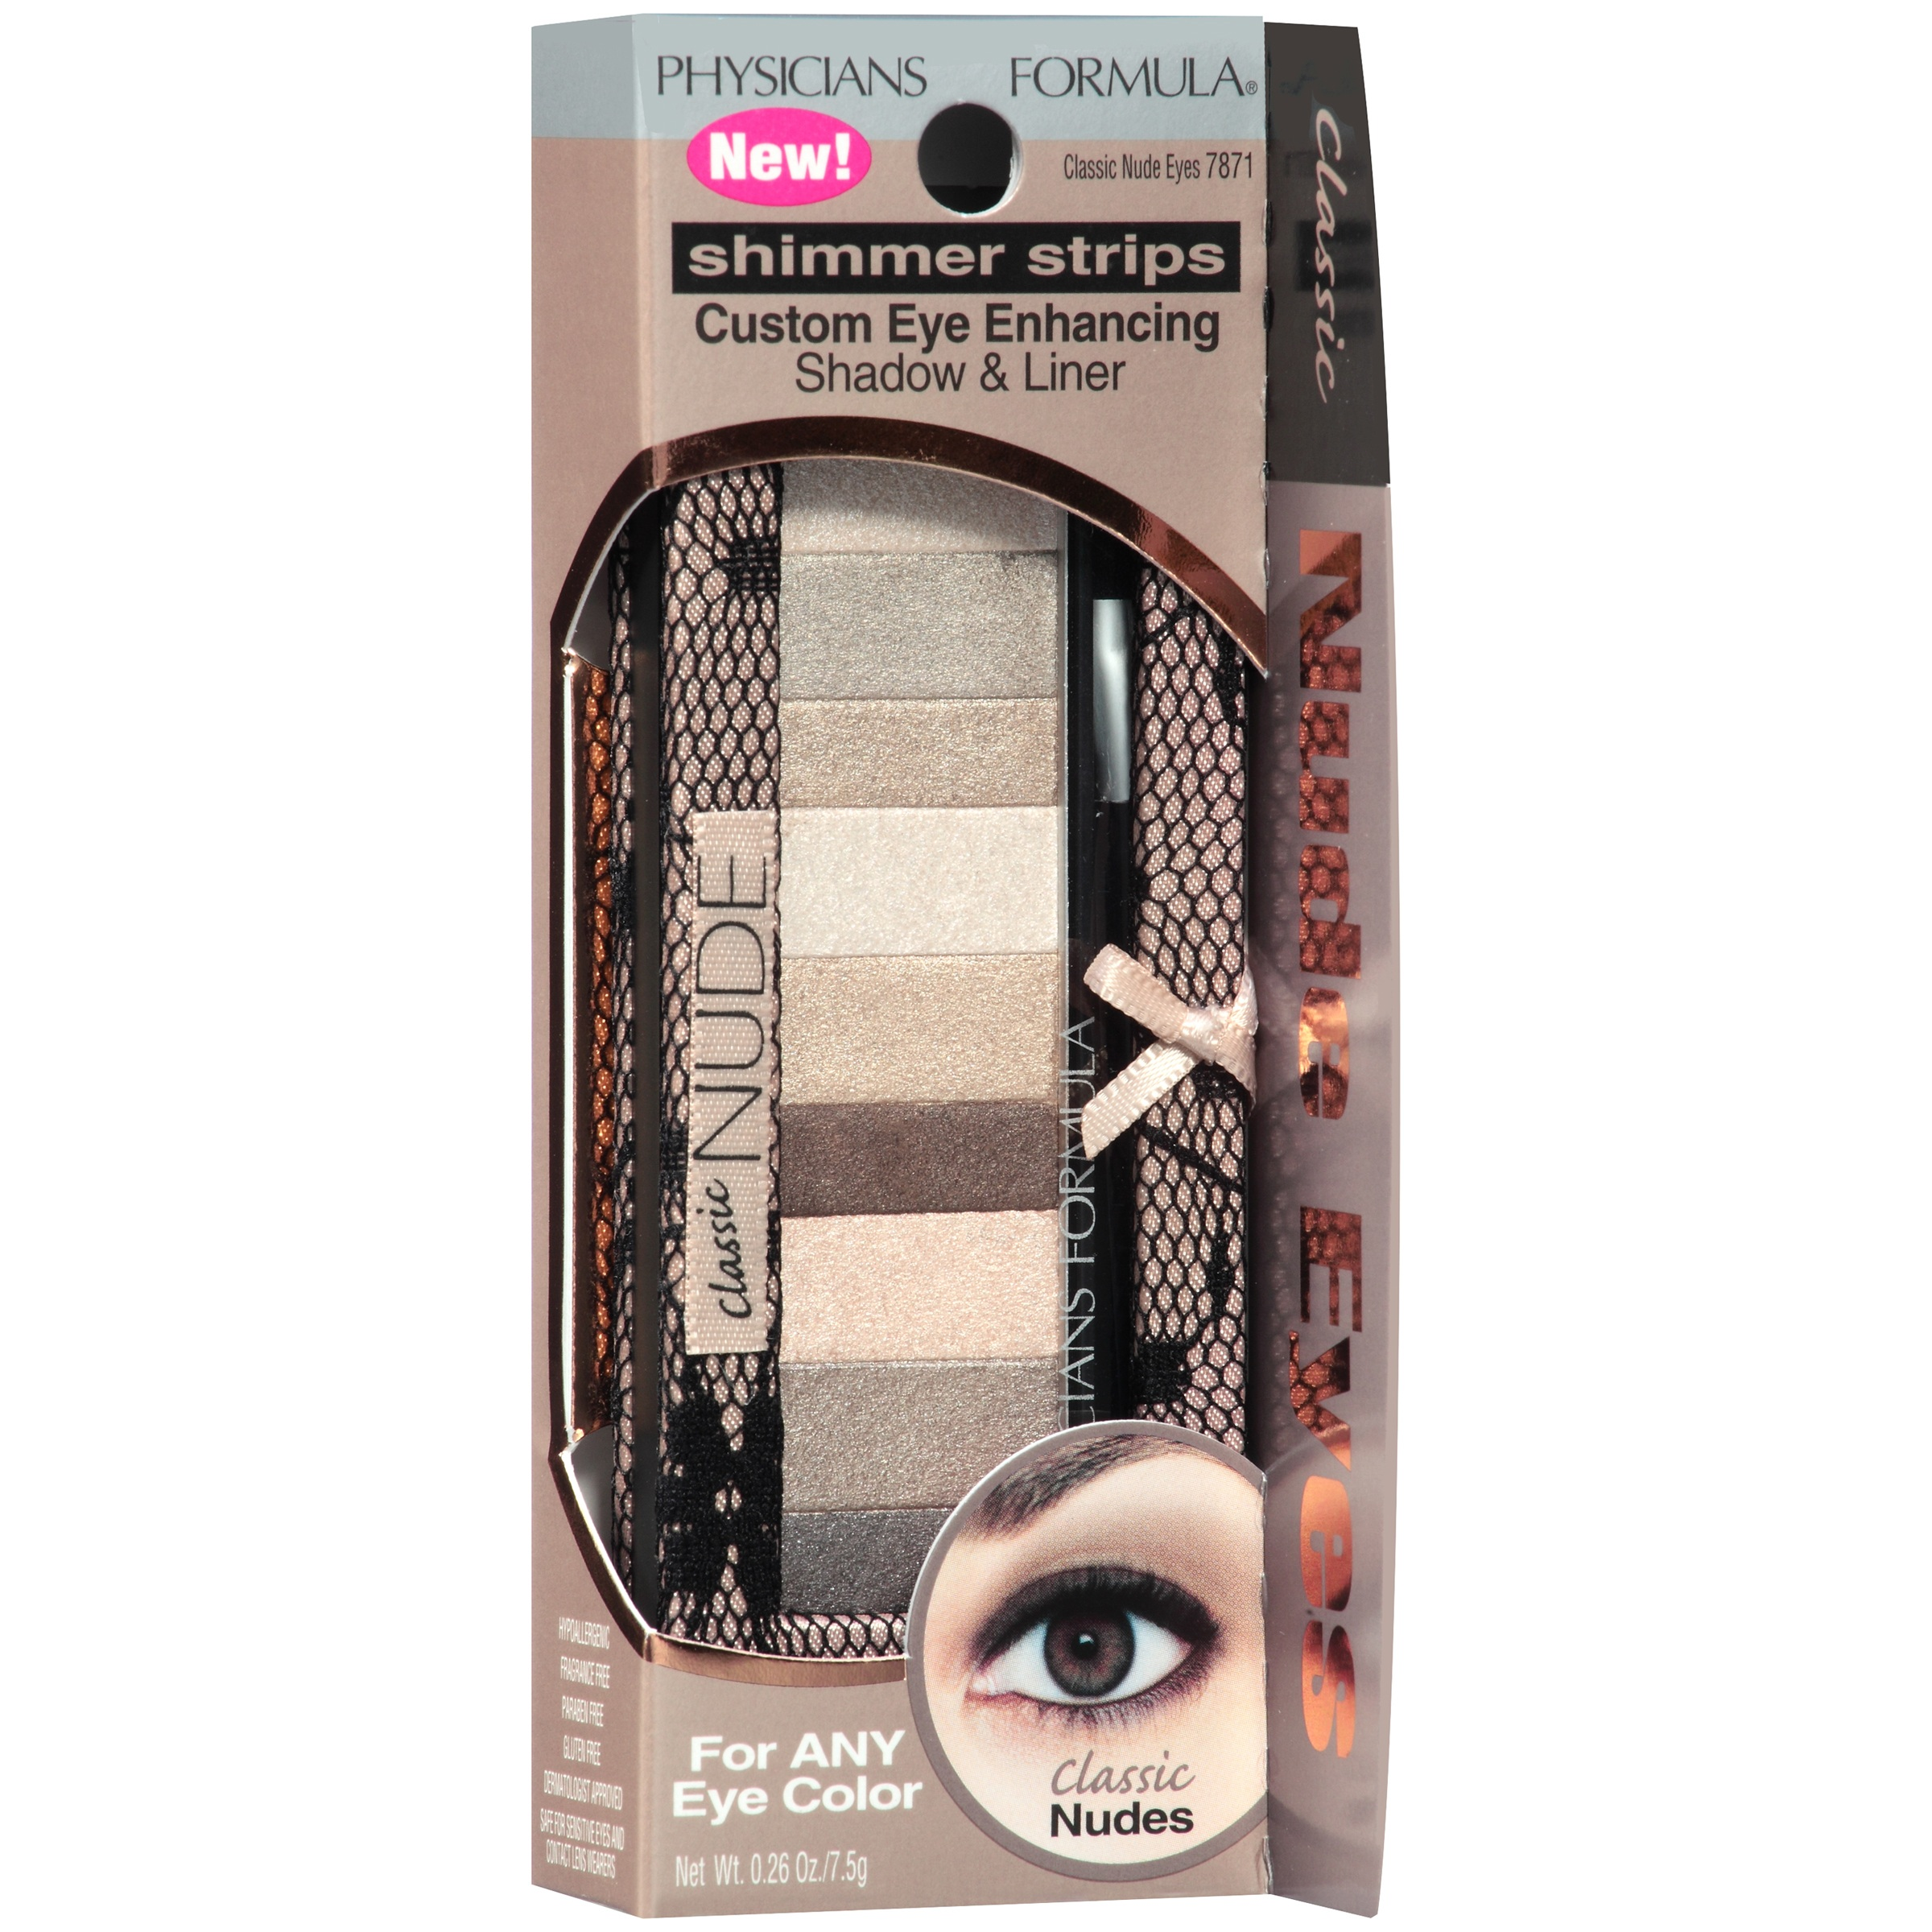 Physicians Formula Shimmer Strips Custom Eye-Enhancing Shadow & Liner, 7871 Classic Nude Eyes, 0.26 oz